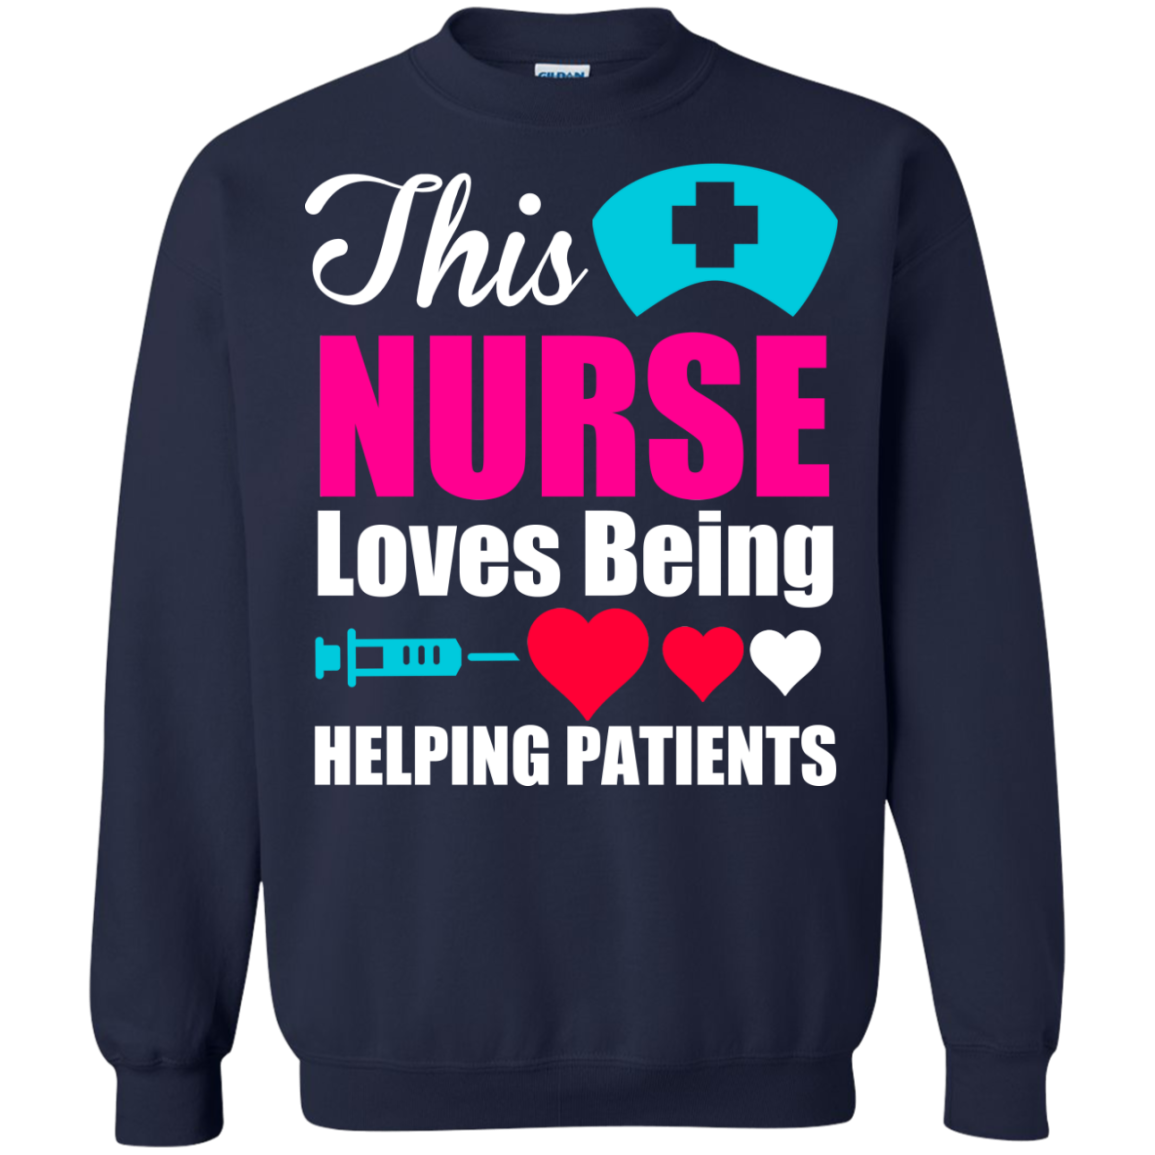 This Nurse Loves Being Helping Patients - Funny Nurse Shirt